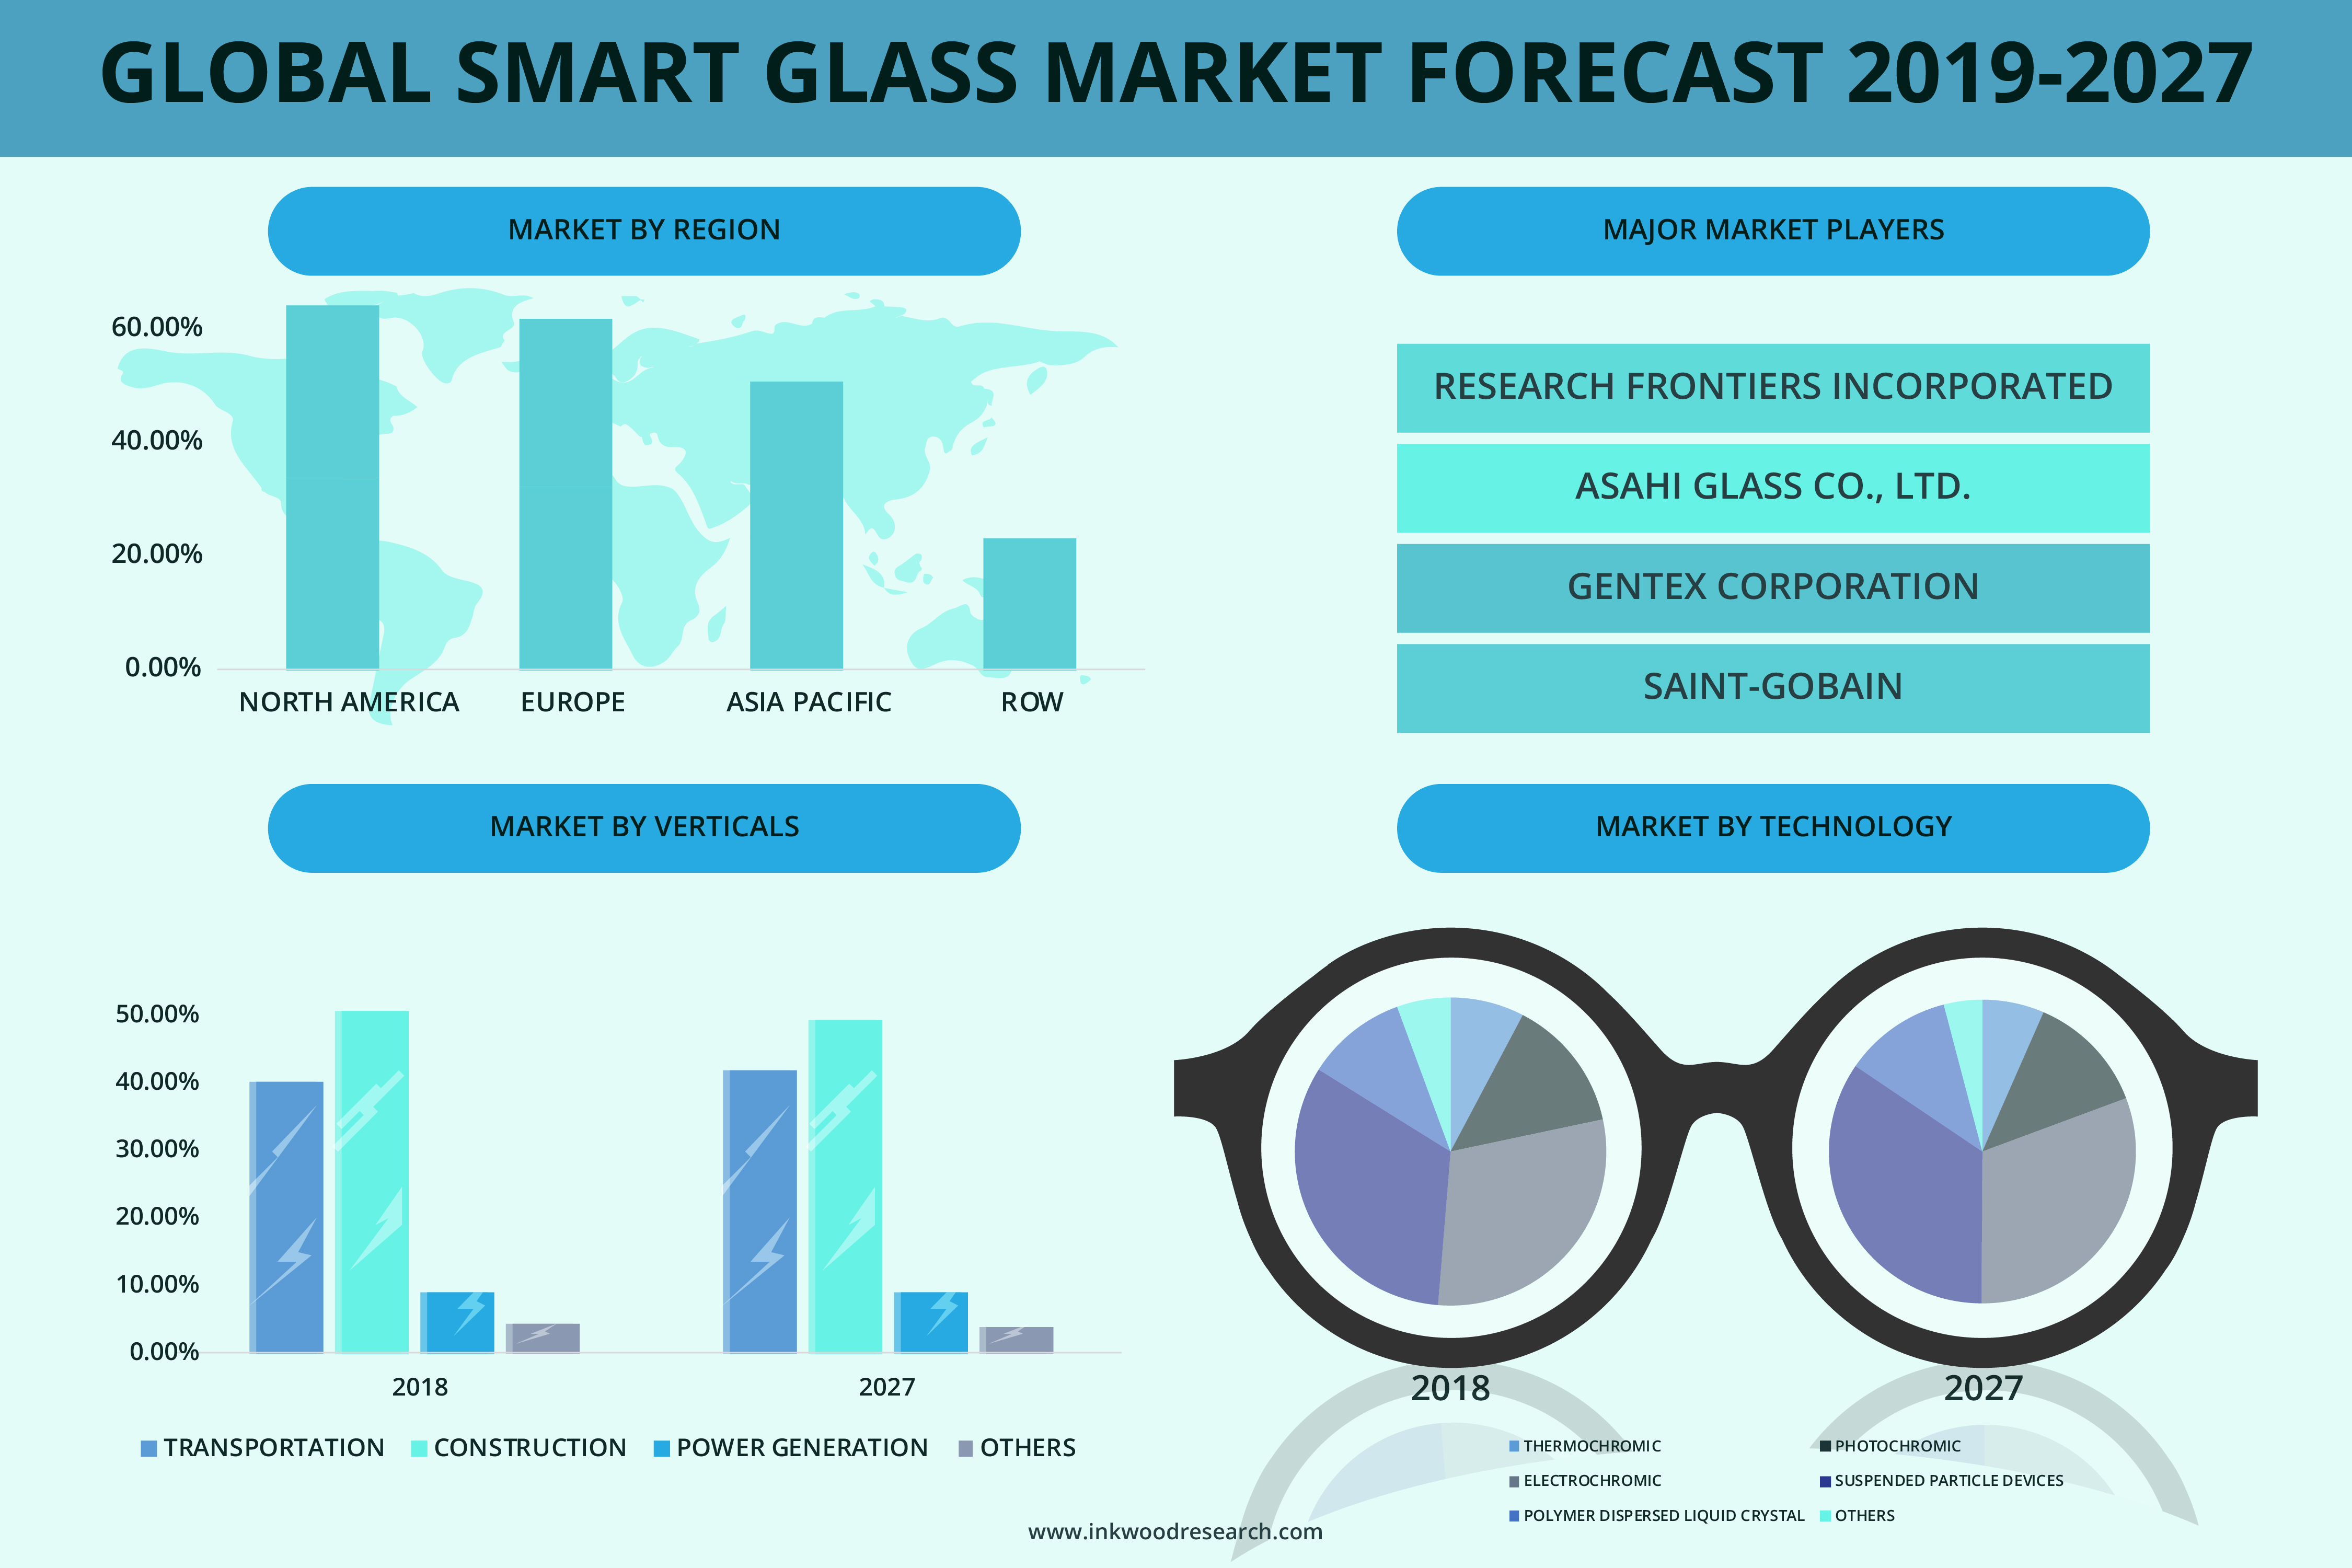 Technological Development is Proliferating the Global Smart Glass Market at 14.10% of Growth Rate